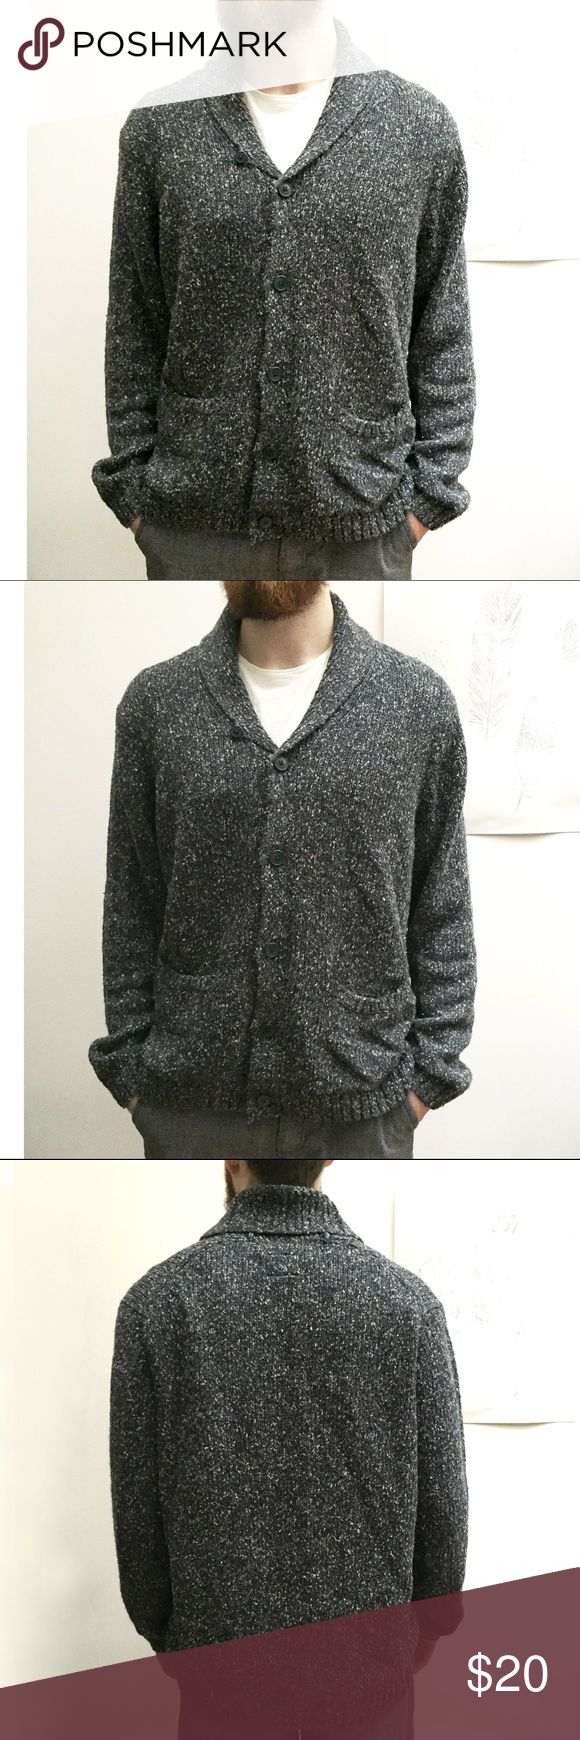 St. John's Bay Men's Shawl Collar Cardigan Sweater Men's Cardigan Sweater in cool gray and white marl yarn with reddish/orange neps. Has pockets. Size large. Gently used, only worn a few times. No signs of wear. 68% acrylic, 27% cotton, 5% wool. St. John's Bay Sweaters Cardigan